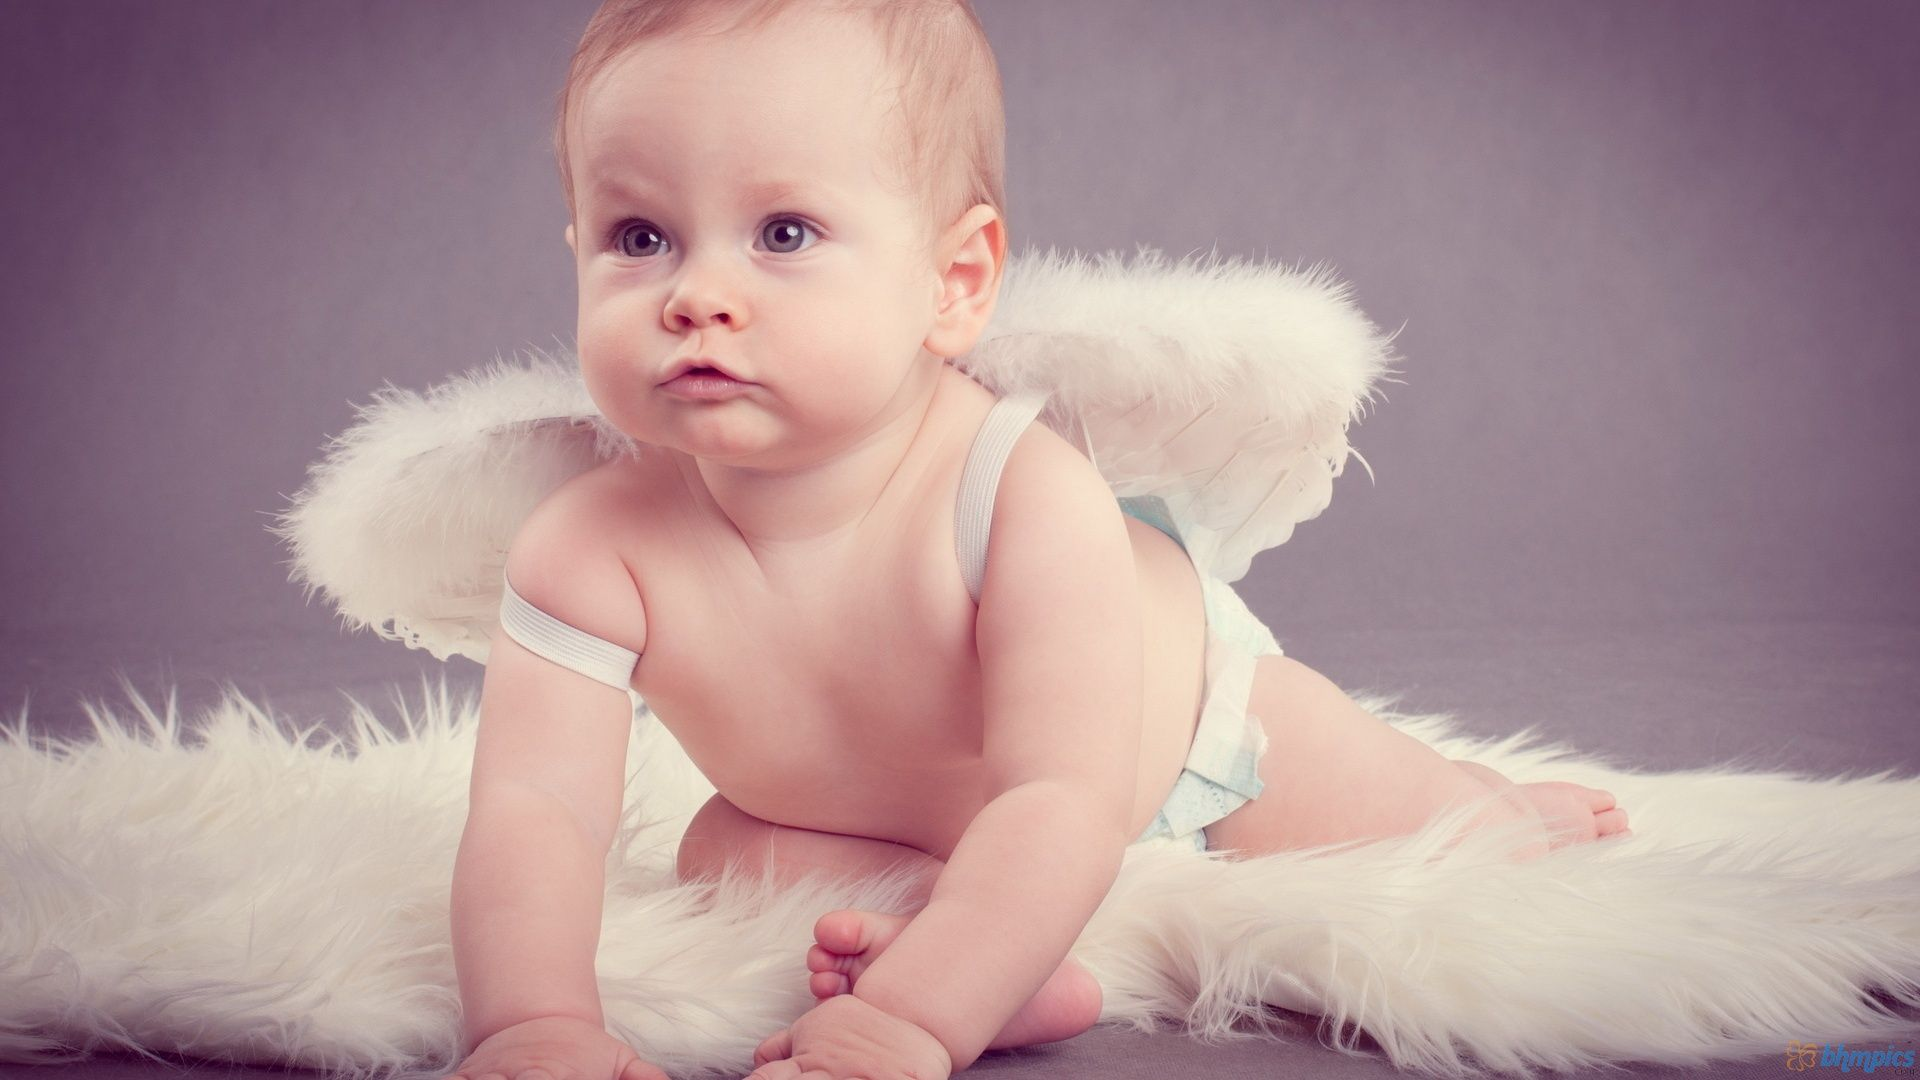 wings baby angel children x wallpaper High Quality